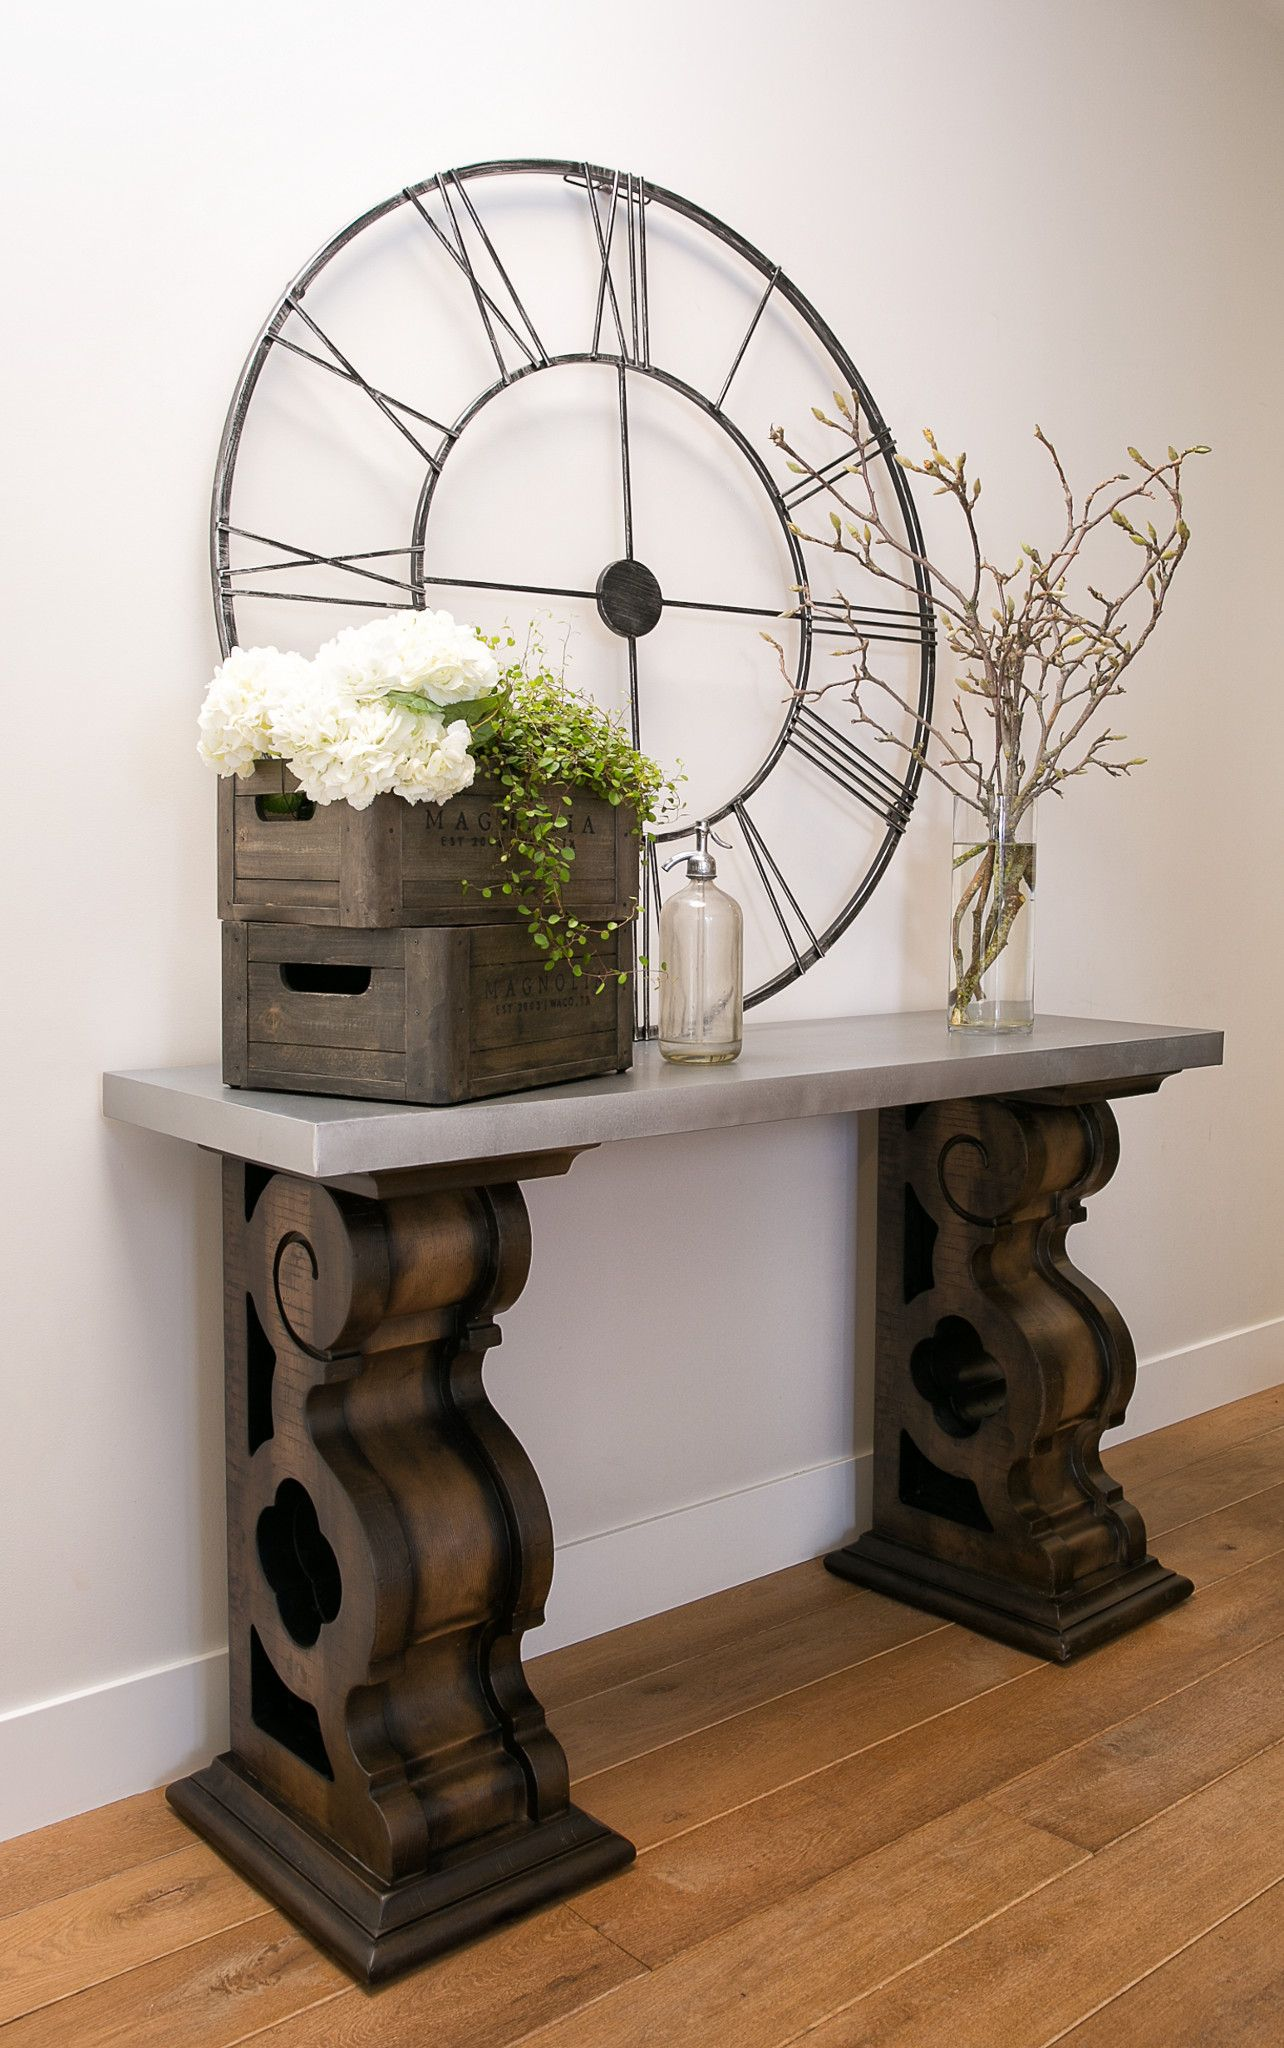 Magnolia Home By Joanna Gaines Double Pedestal Sofa Table With Zinc Top This Console Table Features Massive Corbel Bracket Decor Home Decor Sofa Table Decor